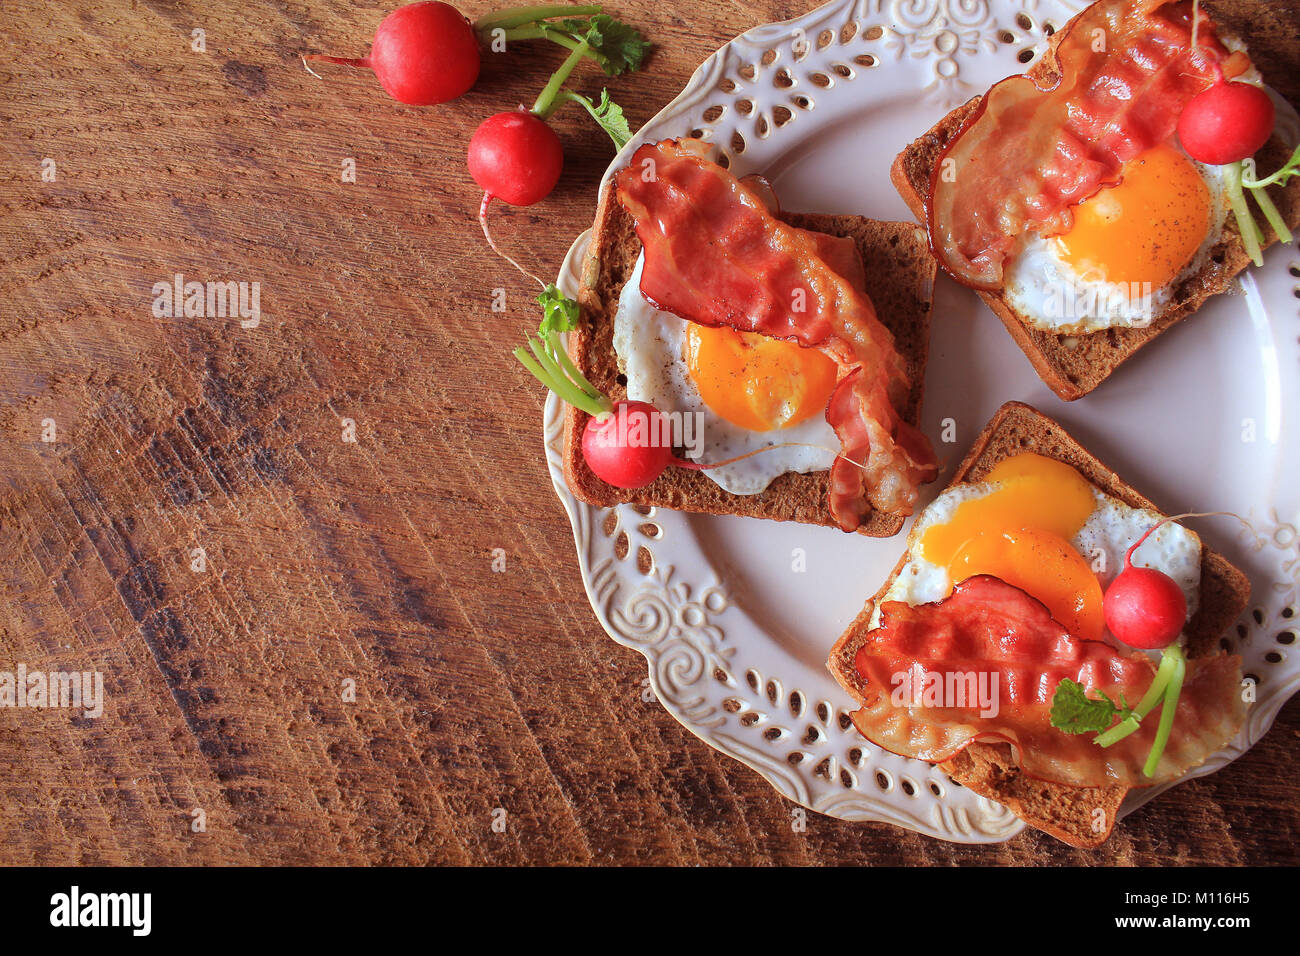 Breakfast , crispy bacon, fried eggs and bread. Sandwiches on white plate. Rustic table . Top view - Stock Image